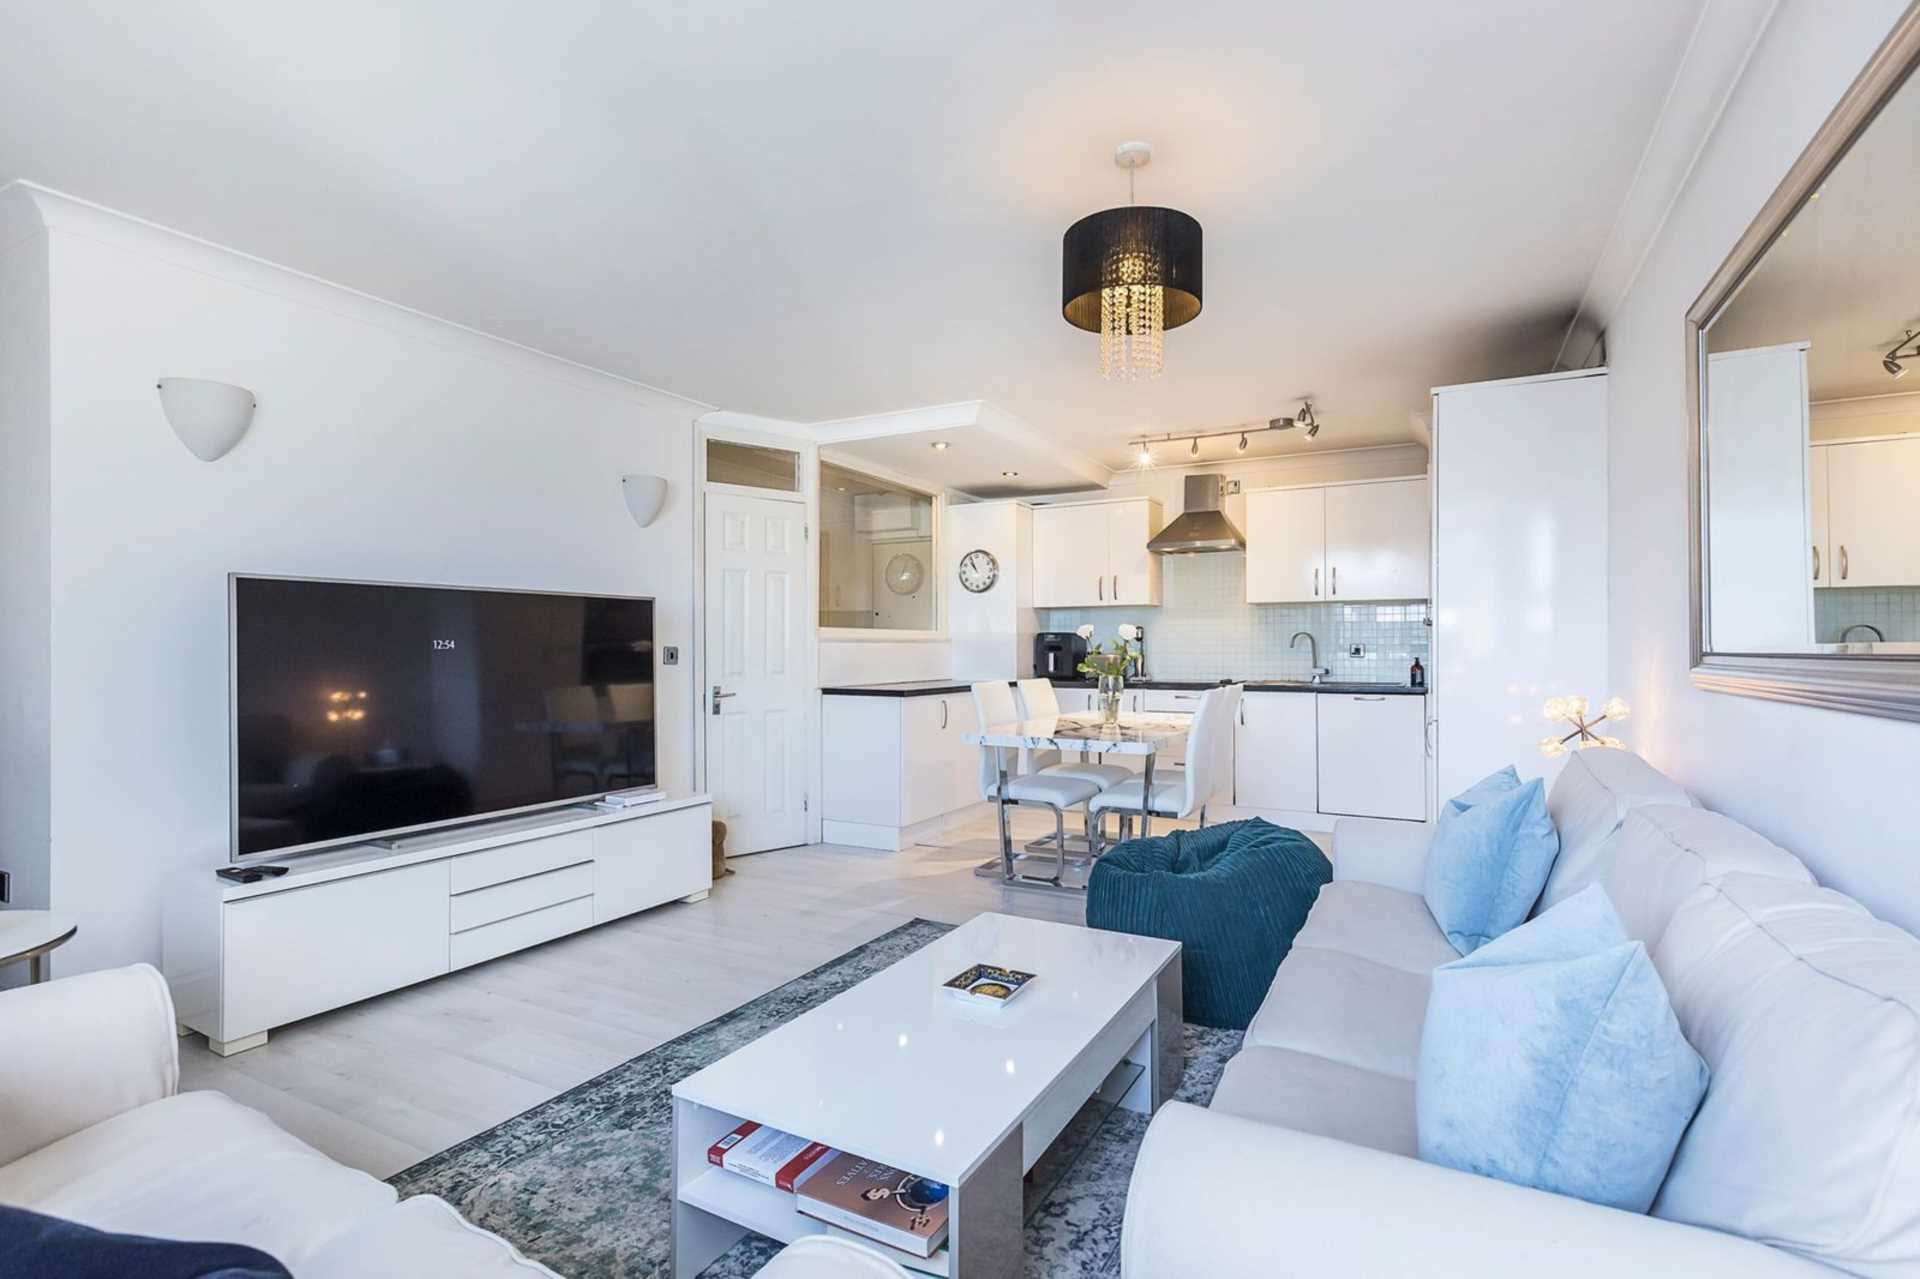 Cromwell Road, Earls Court, SW5, Image 1